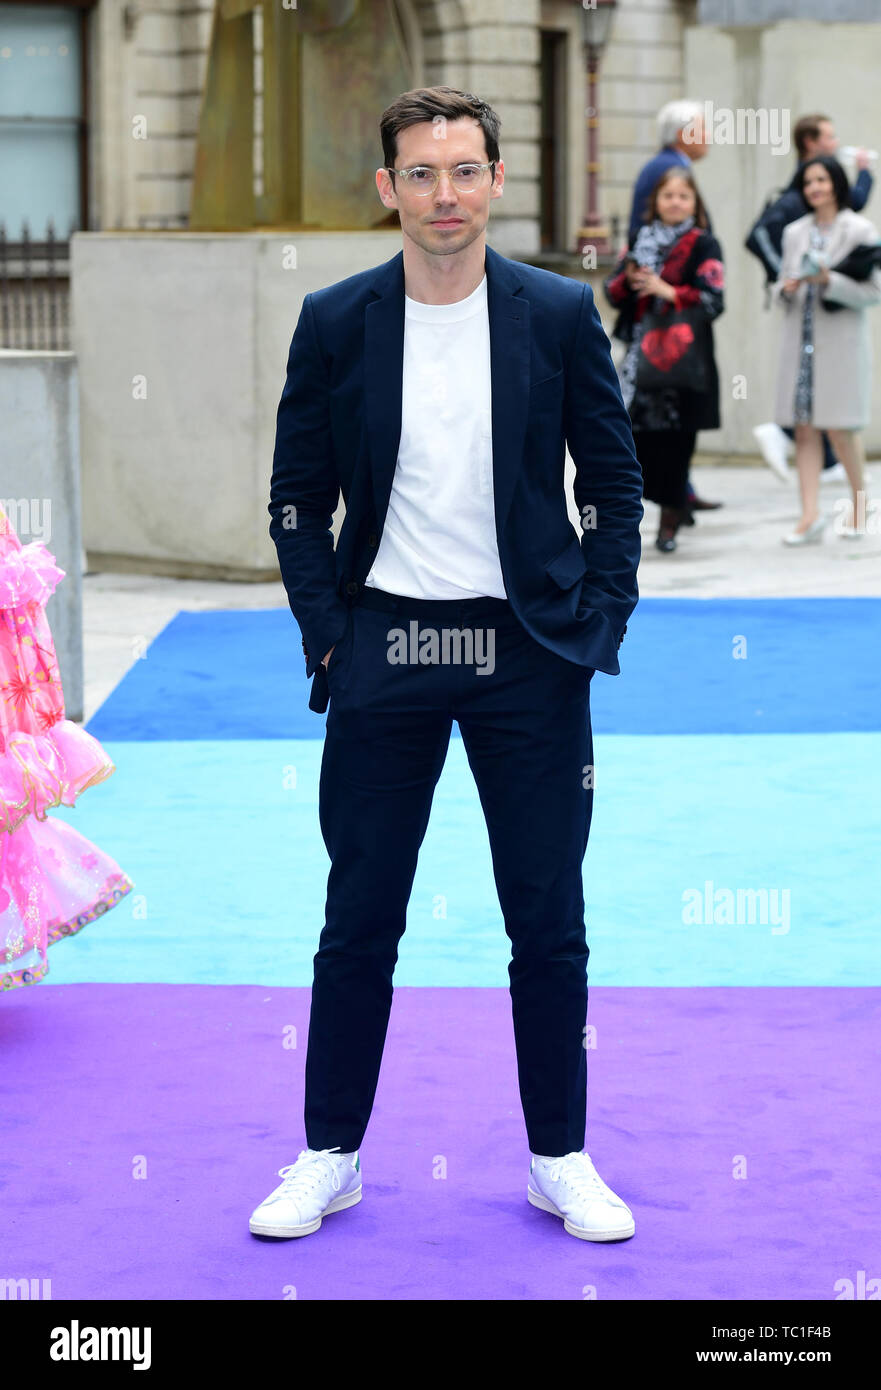 Erdem Moralioglu attending the Royal Academy of Arts Summer Exhibition Preview Party held at Burlington House, London. - Stock Image